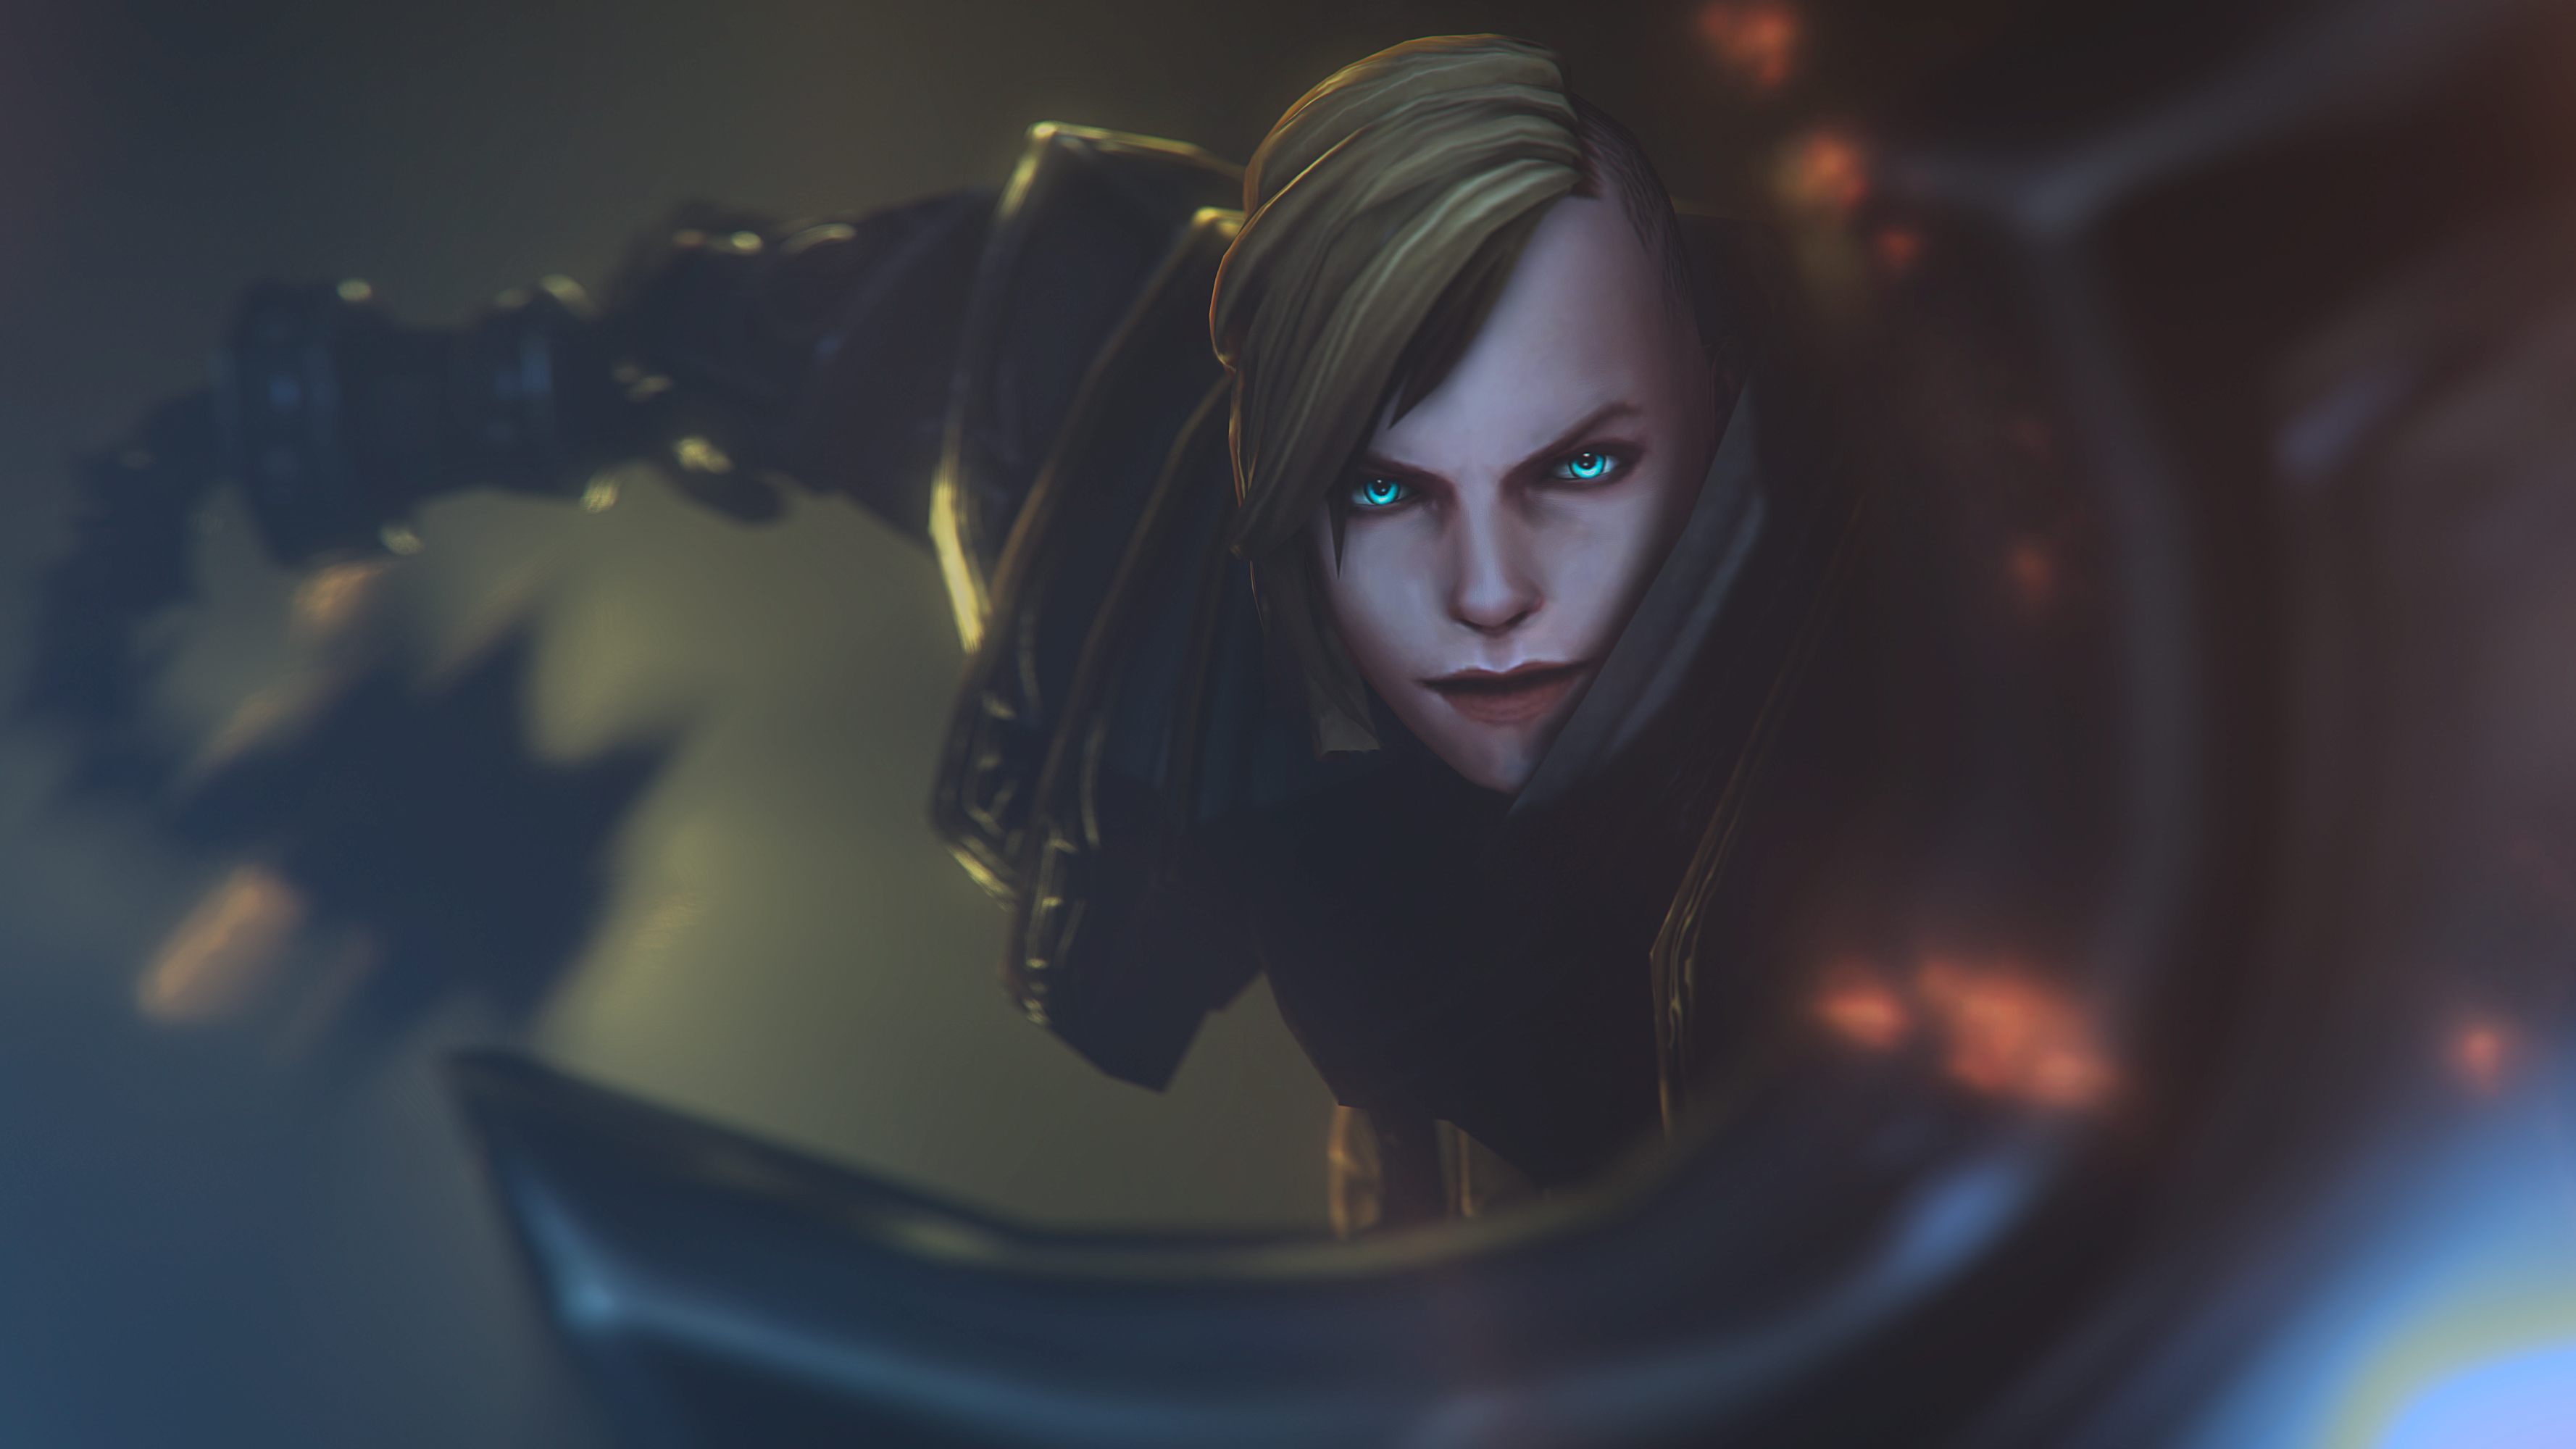 Johanna Heroes Of The Storm By Demiisak On Deviantart I suppose you could call it a hots logs preseason summary, though these include games in all game modes. johanna heroes of the storm by